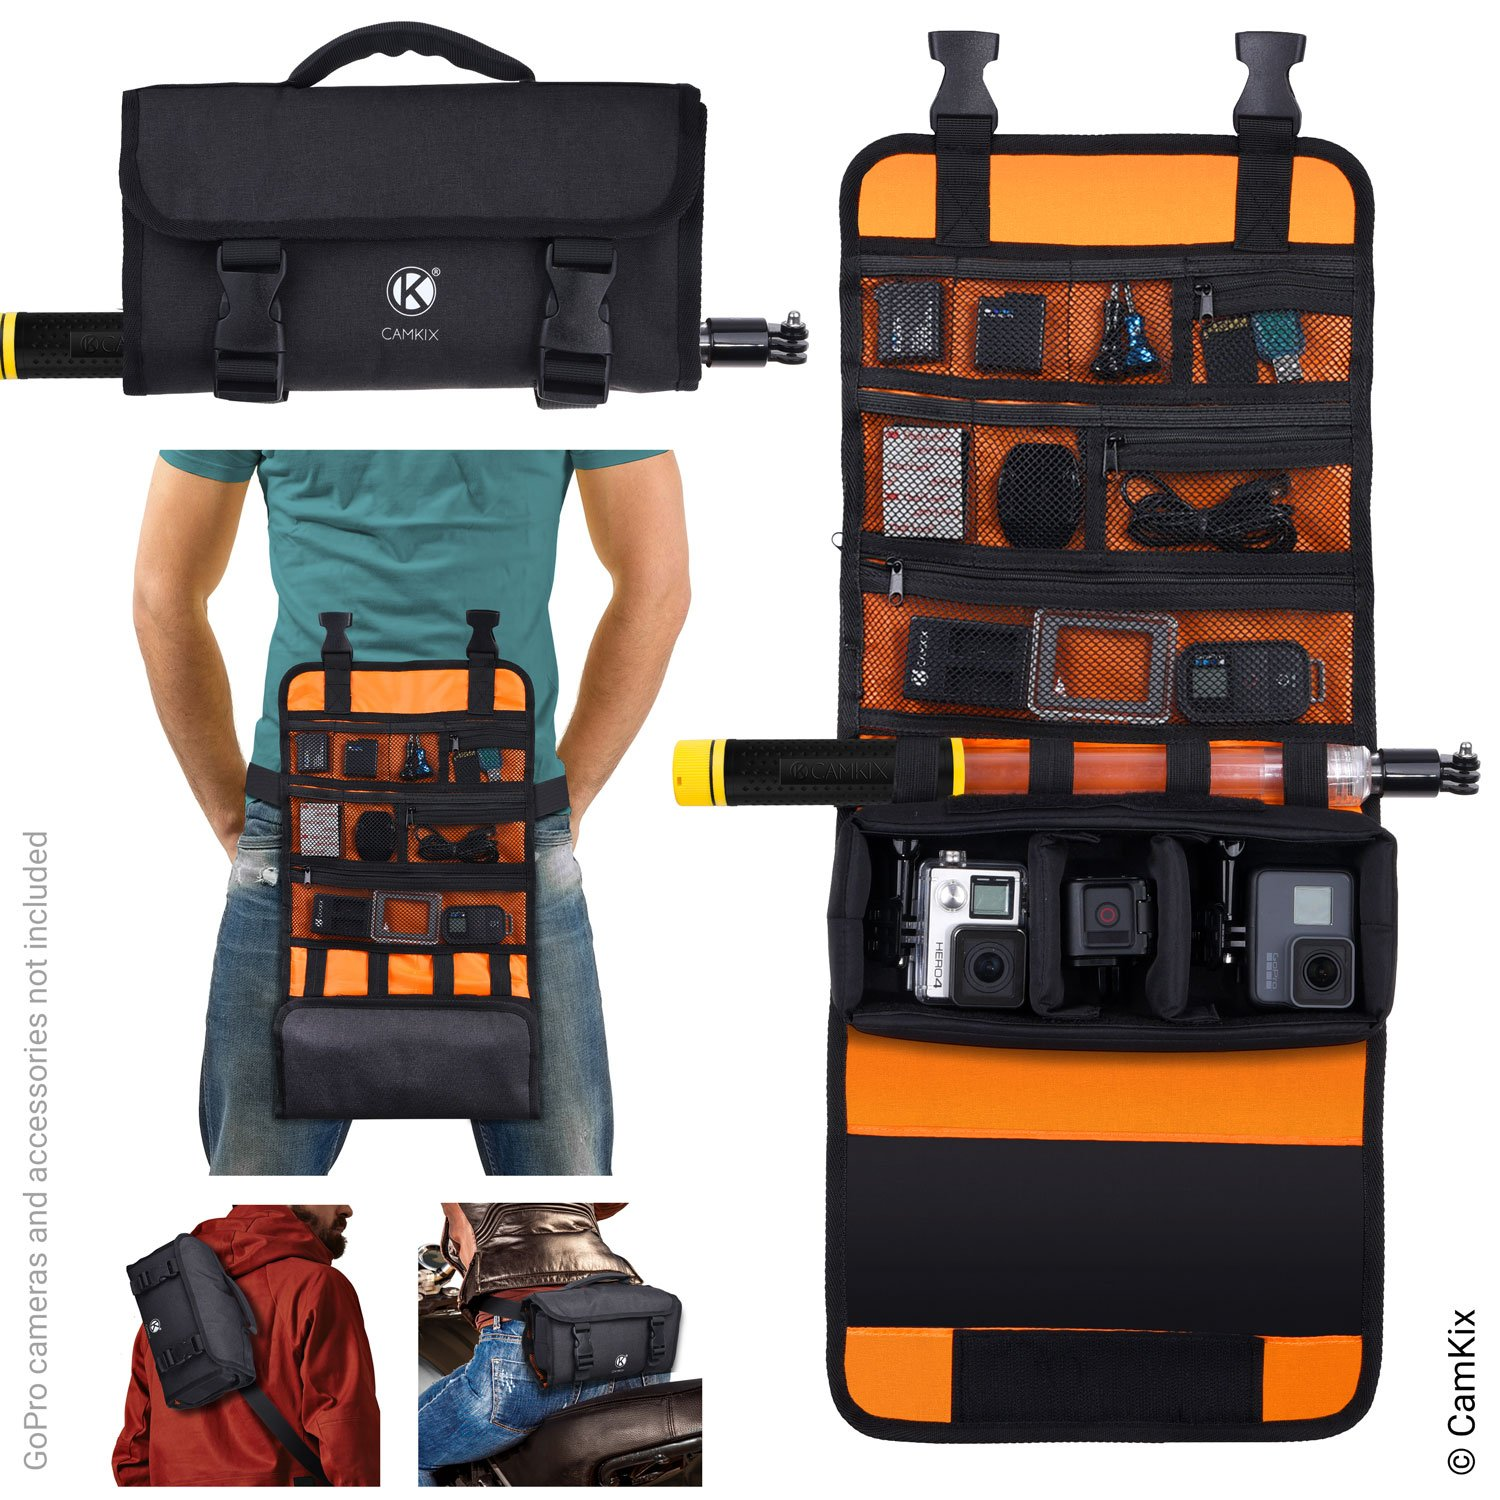 CamKix Replacement Roll-Out Bag with Waist/Shoulder Strap Compatible with GoPro Hero + Other Action/Compact Cameras - Multiple Carry Options (Hand, Shoulder, Waist, Back) - Smart Case Layout